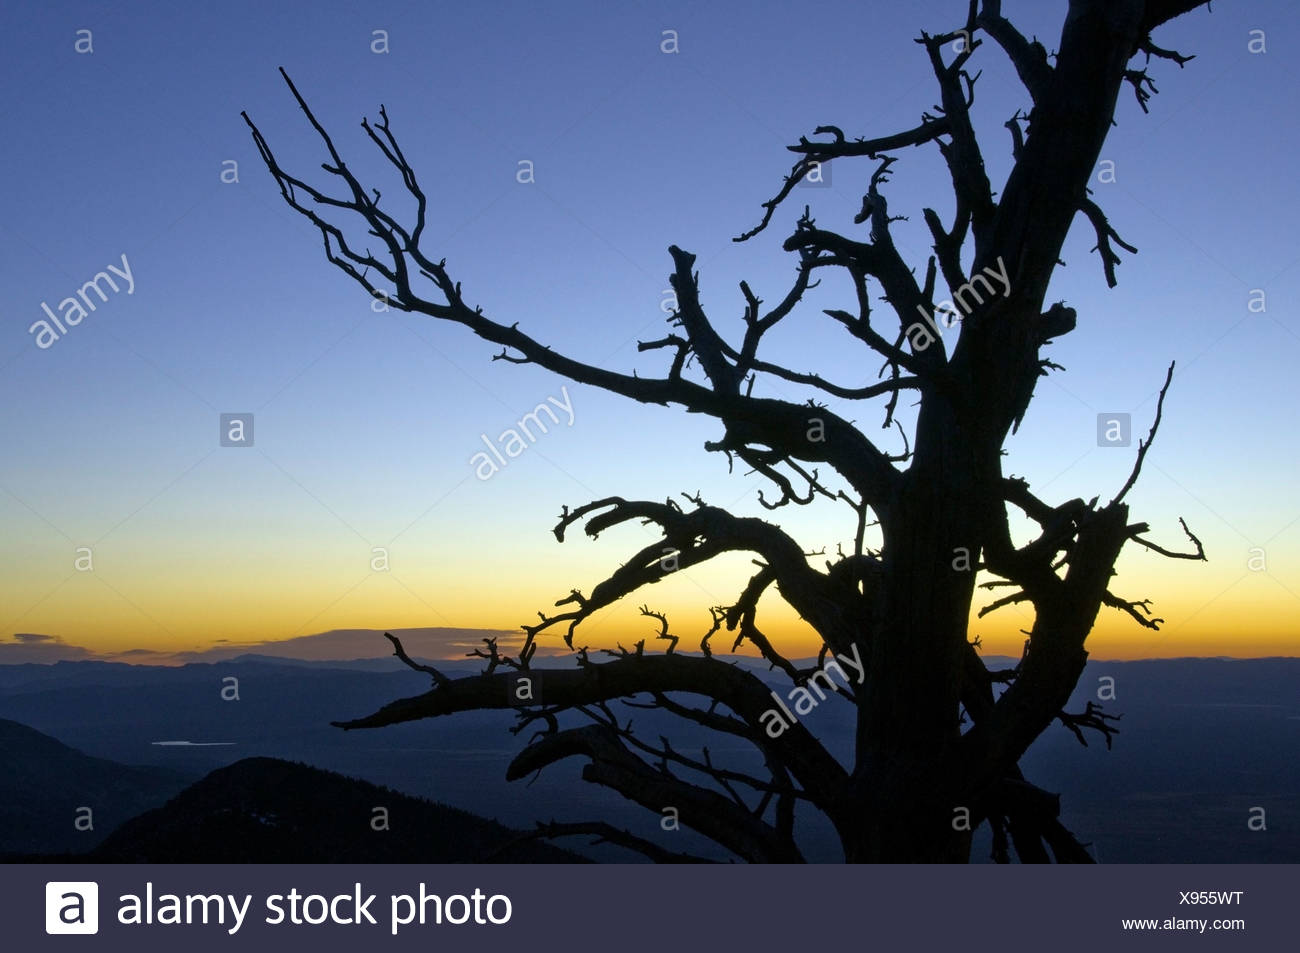 La silhouette d'un arbre au lever du soleil dans le Parc National du Grand Bassin, NV. Photo Stock